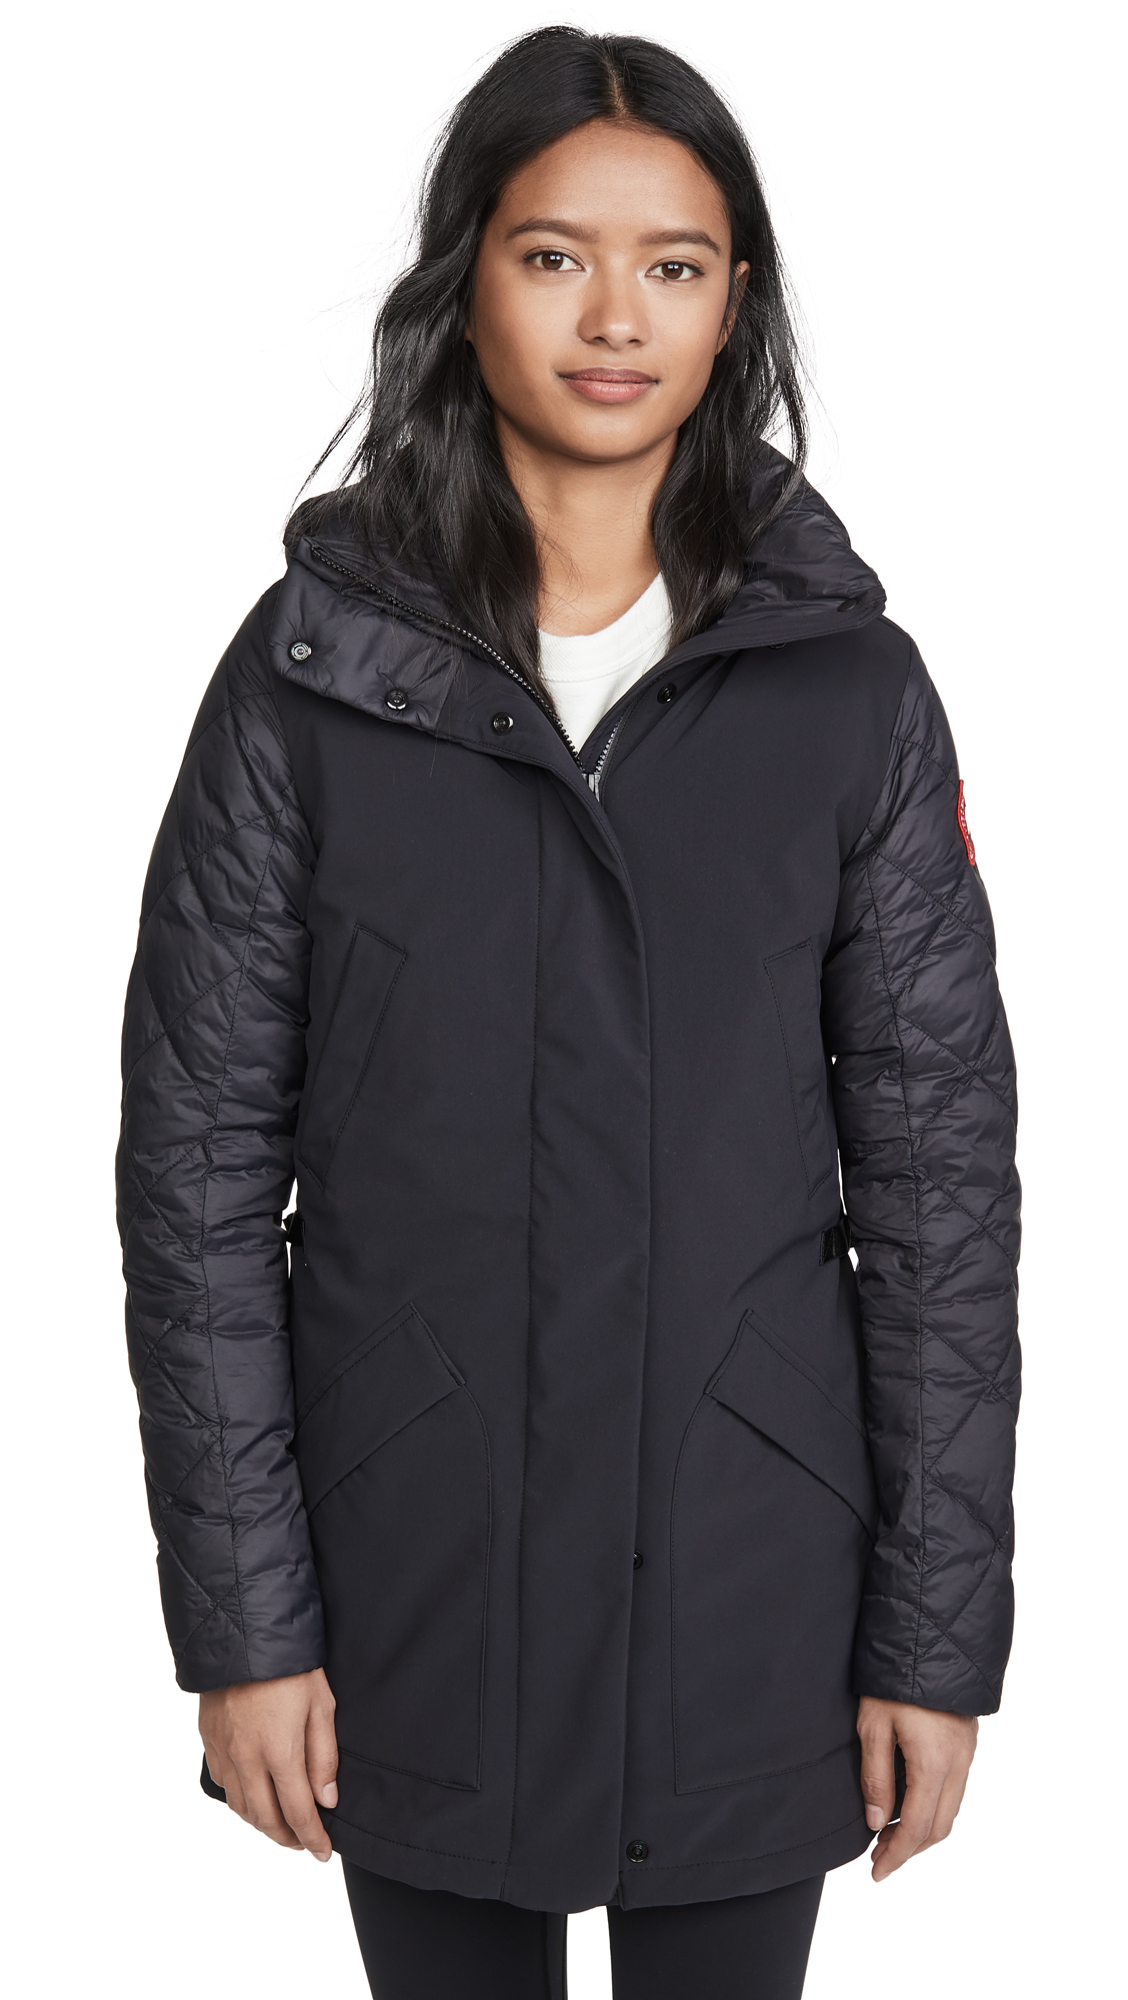 Buy Canada Goose Berkley Coat online beautiful Canada Goose Jackets, Coats, Down Jackets